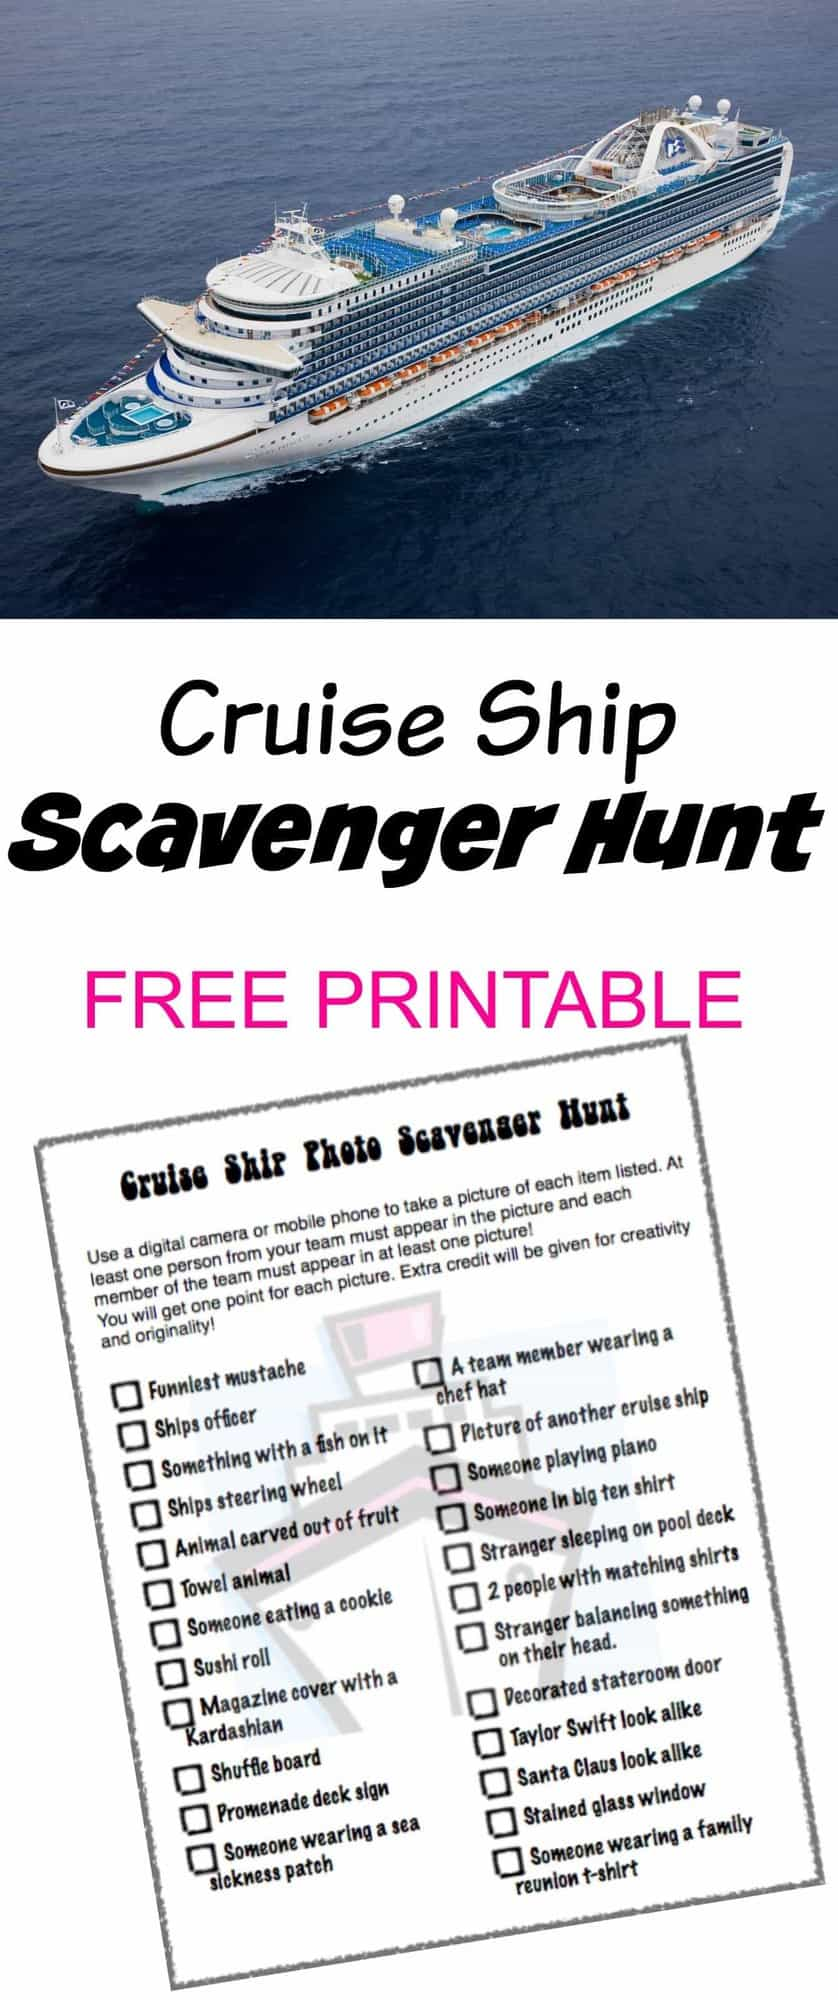 Cruise Ship Photo Scavenger Hunt